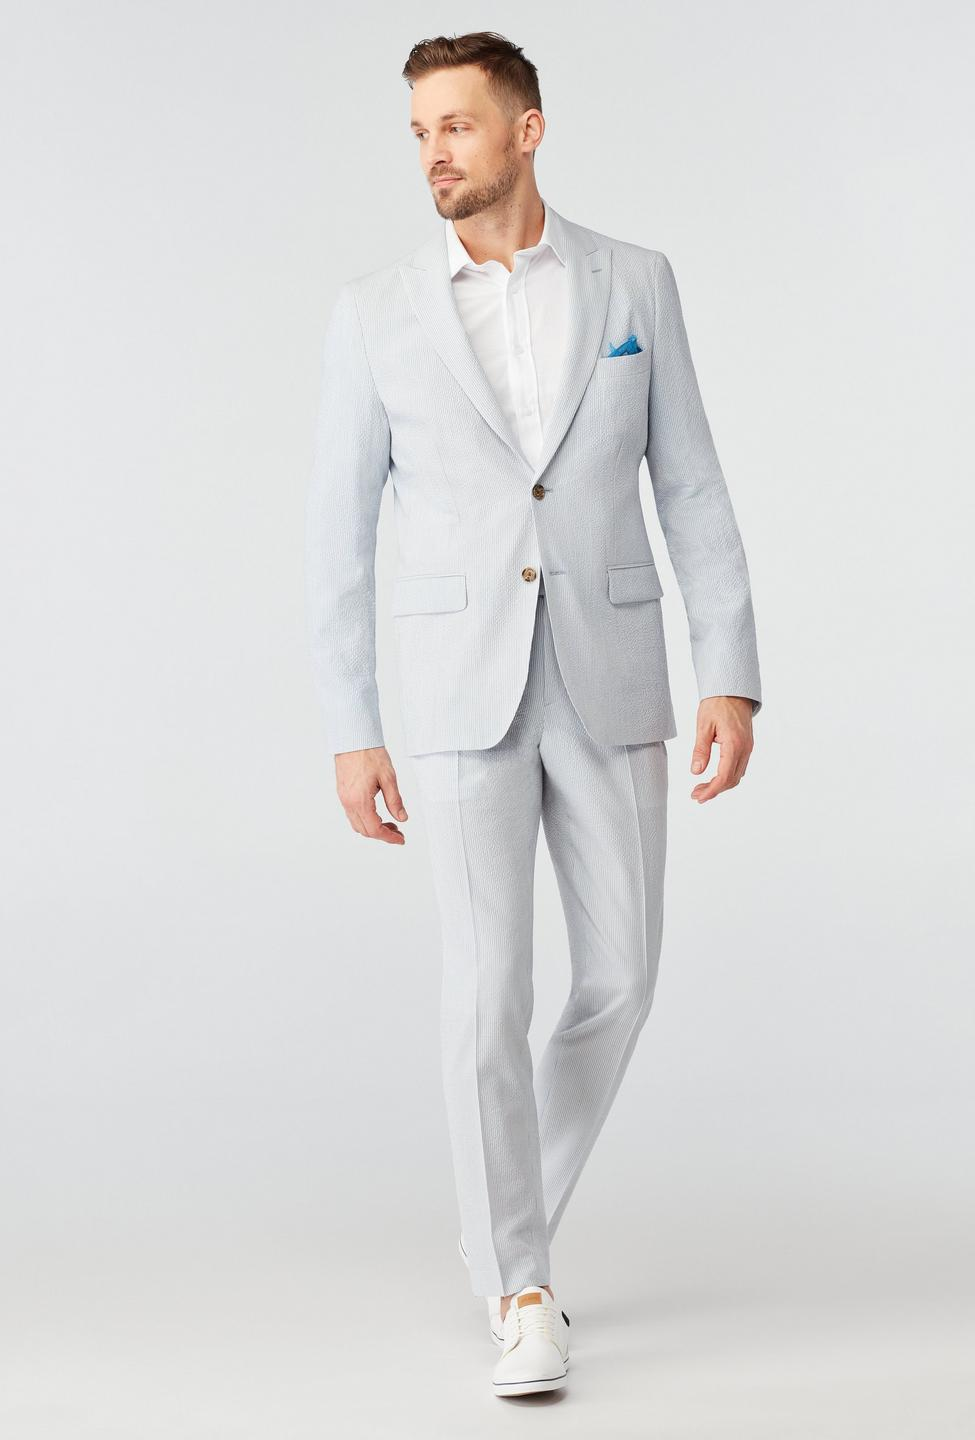 Mens beach wedding guest outfit idea with light grey suit